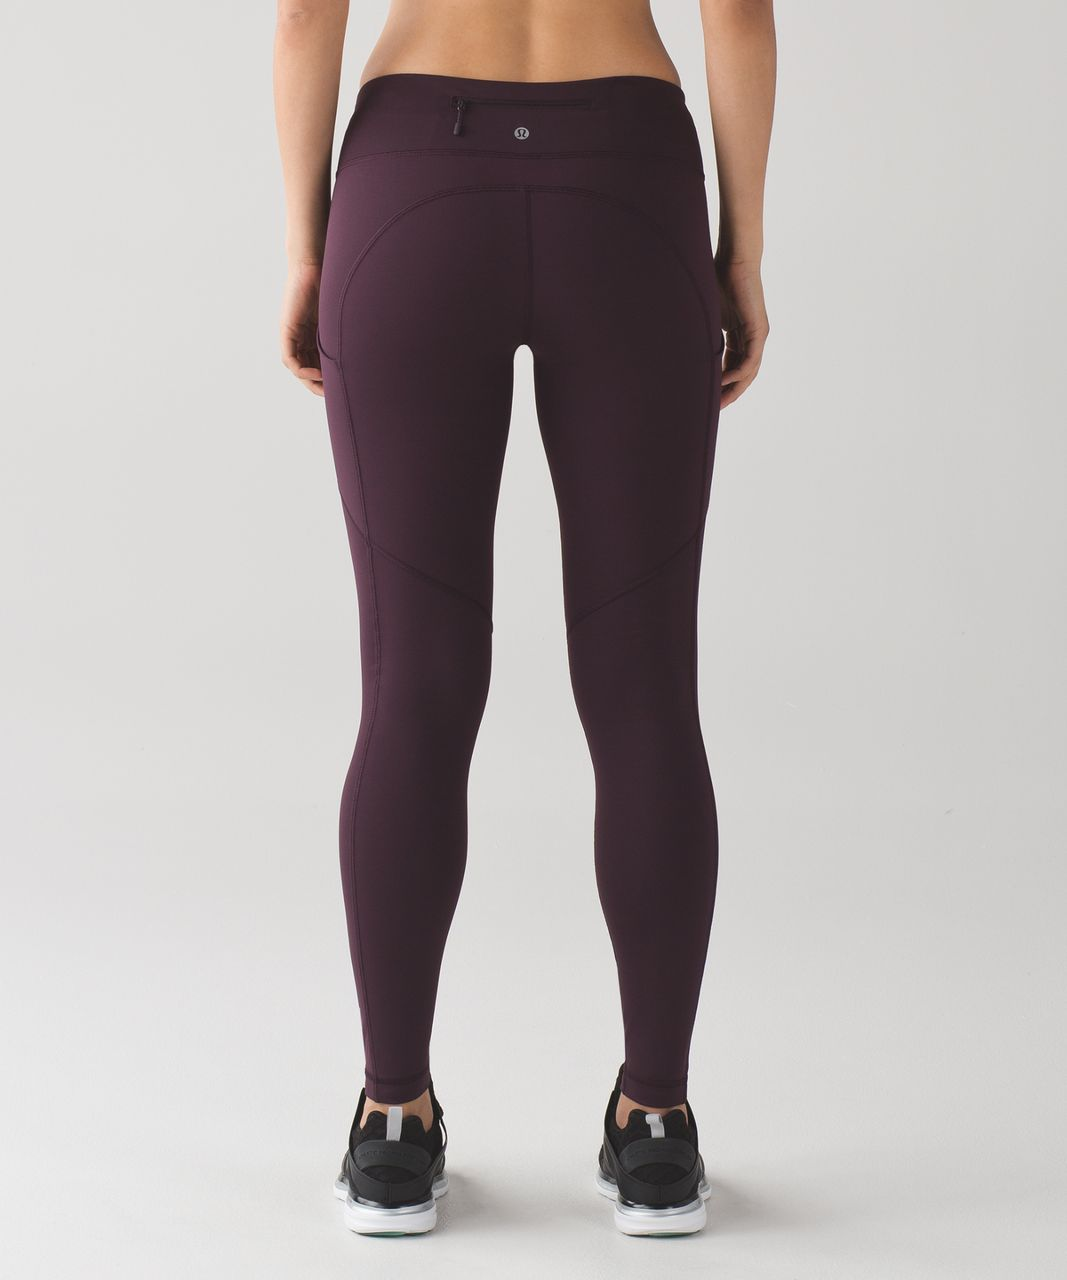 Lululemon Speed Tight V (Brushed) - Black Cherry